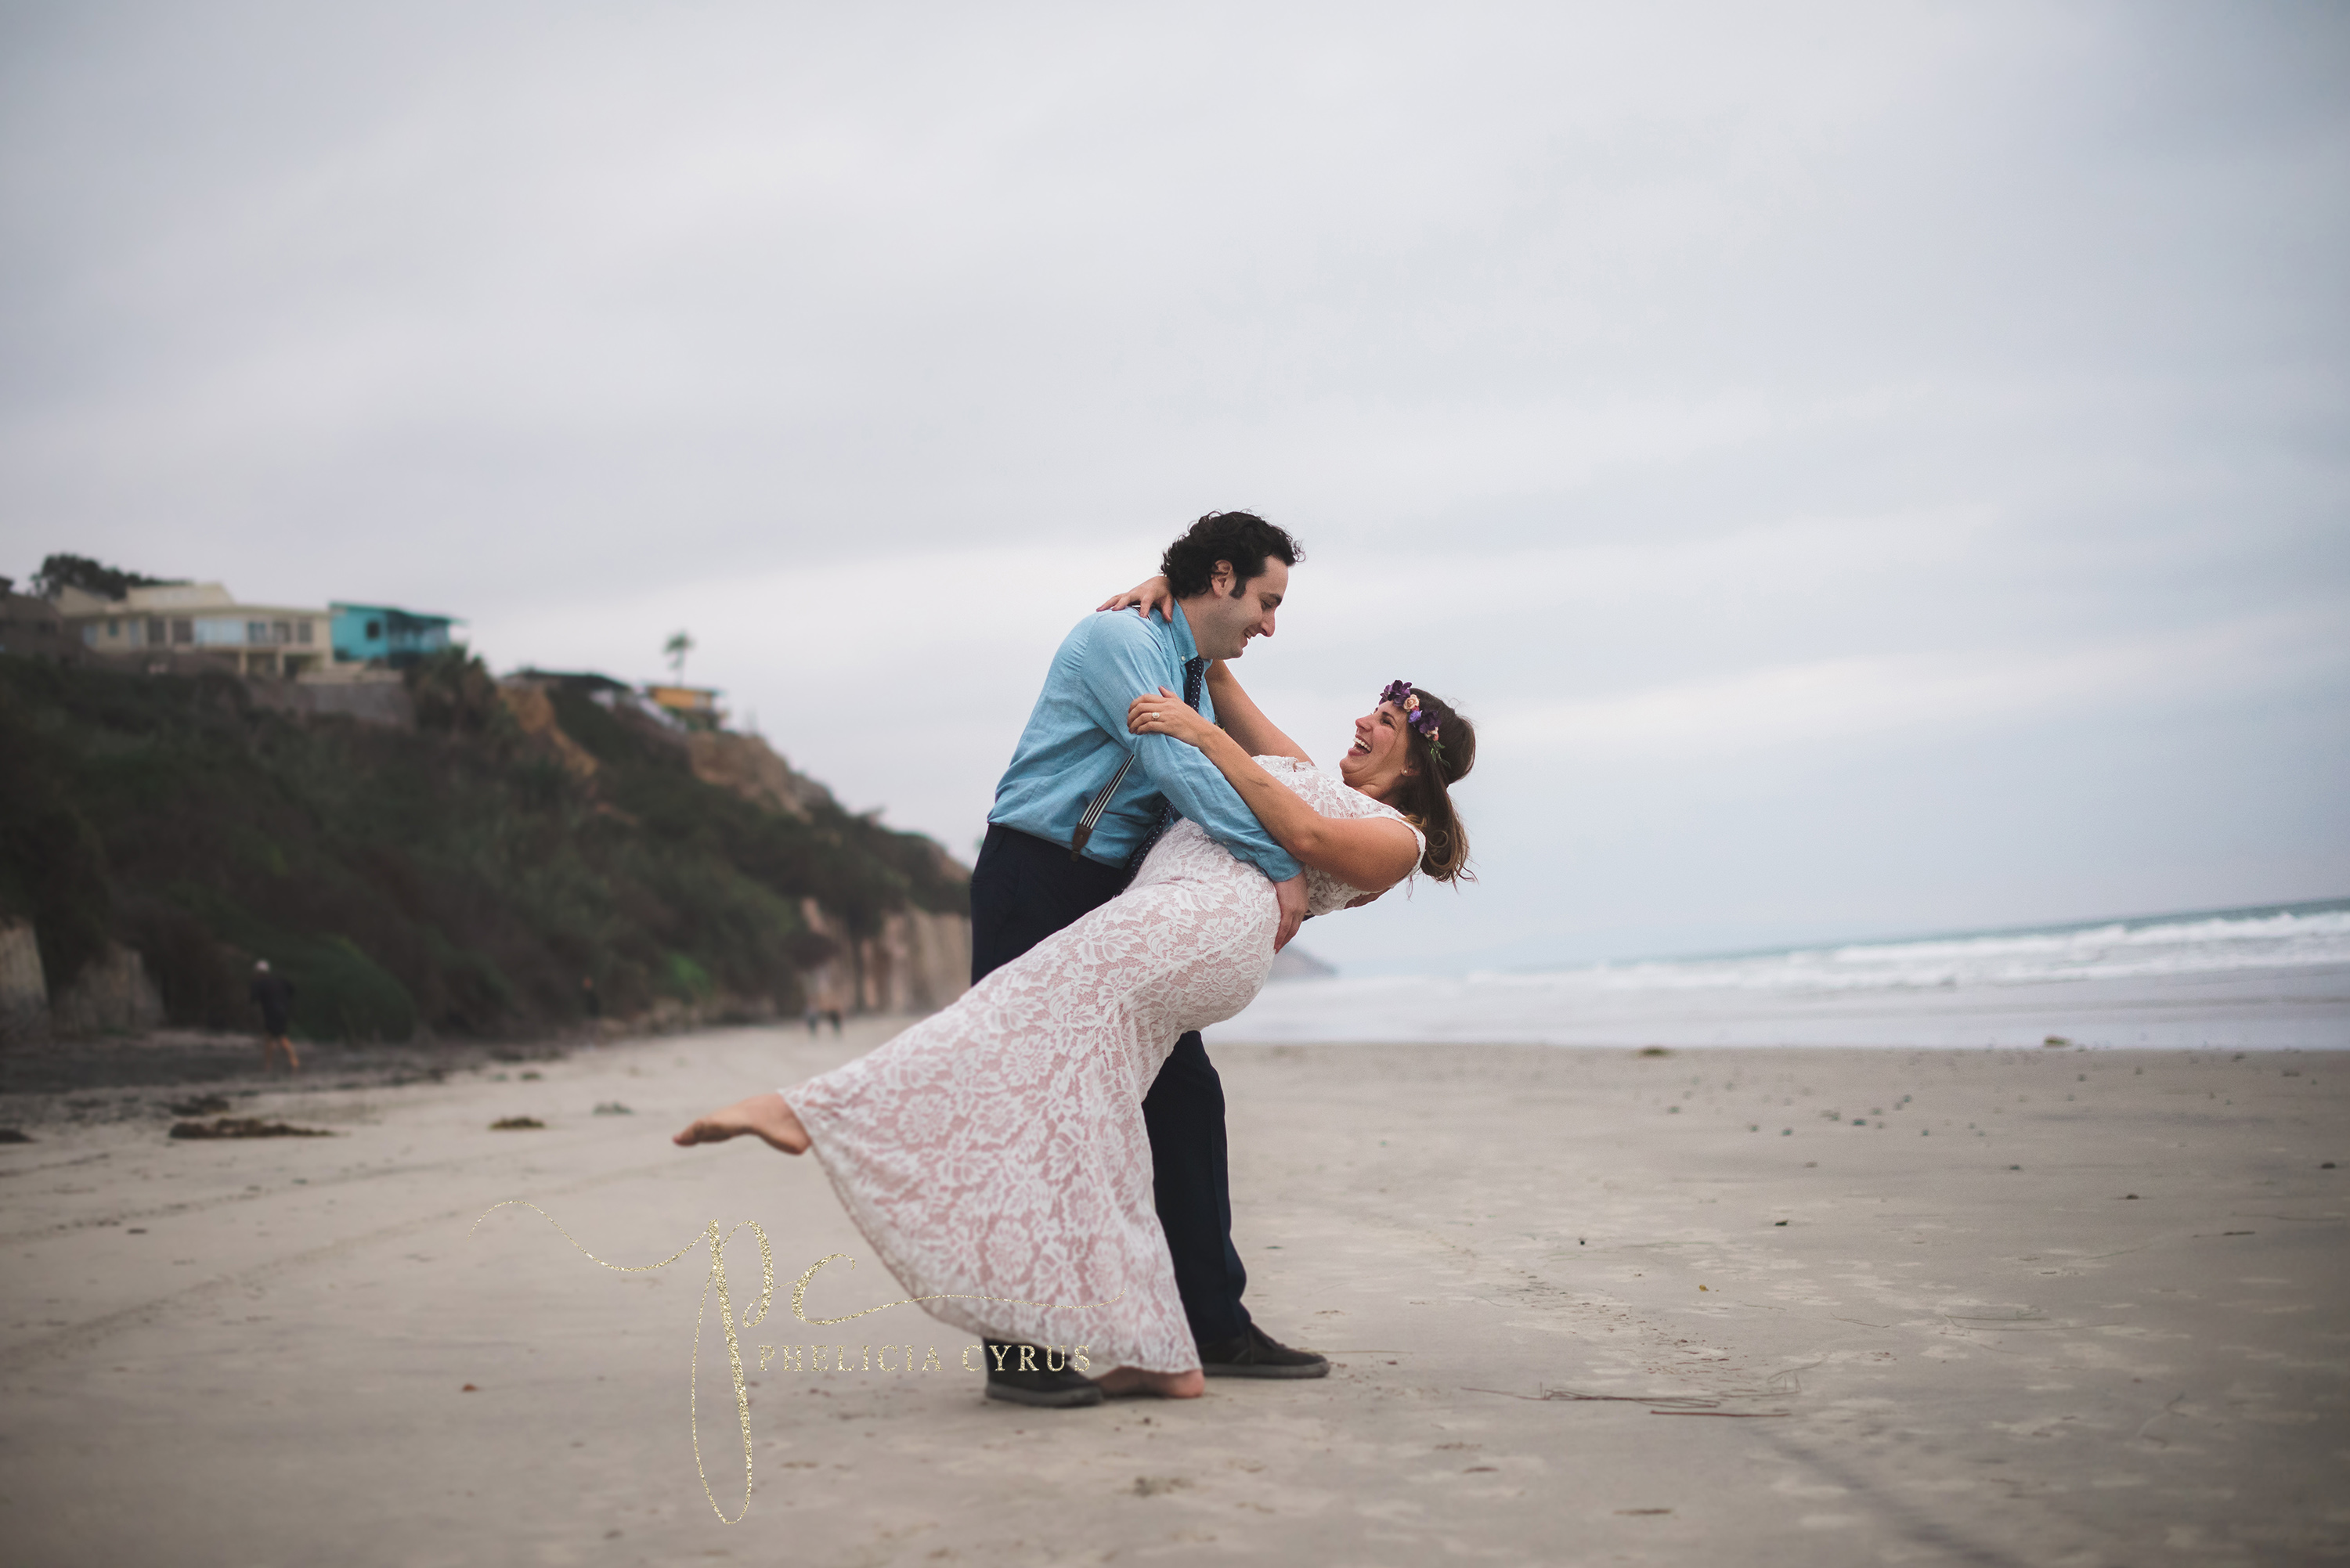 Destination Wedding on the Beaches of Encinitas, CA